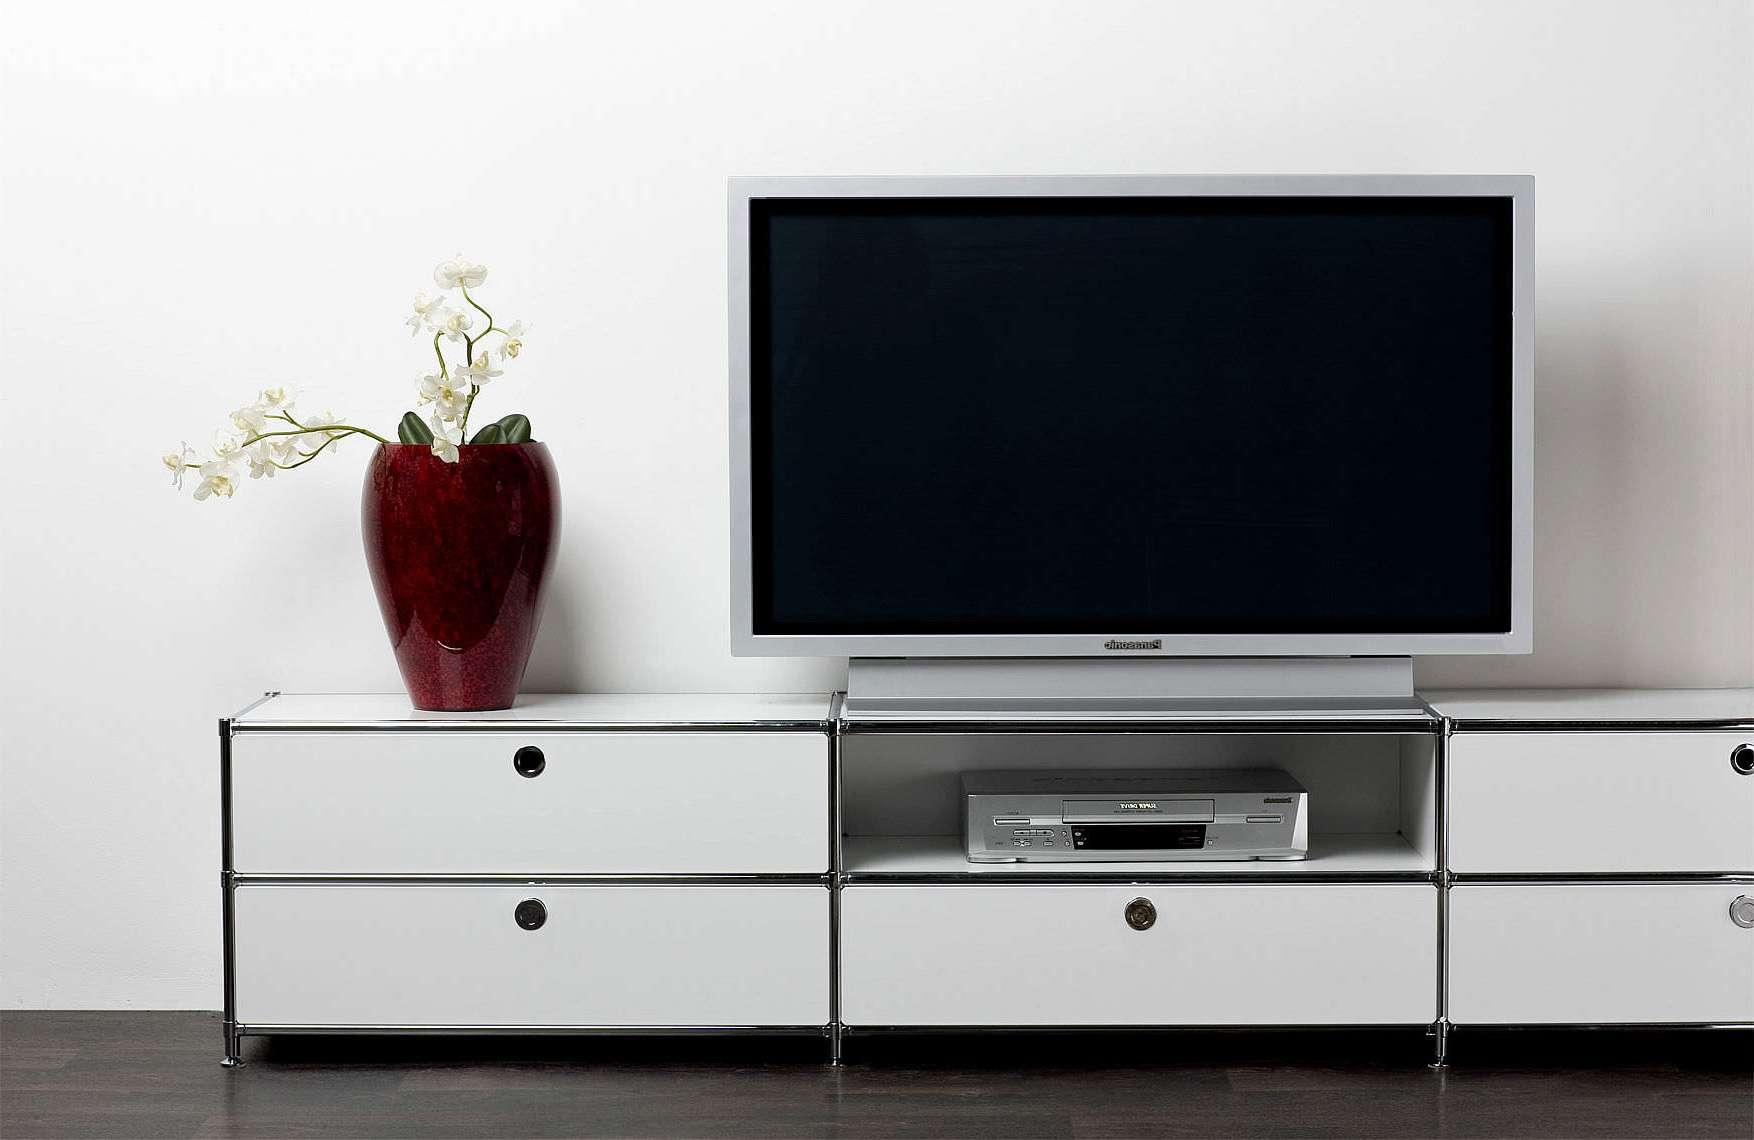 White Wooden Tv Cabinet With Drawers And Rack Also Stainless Steel Regarding Tv Cabinets With Drawers (View 20 of 20)